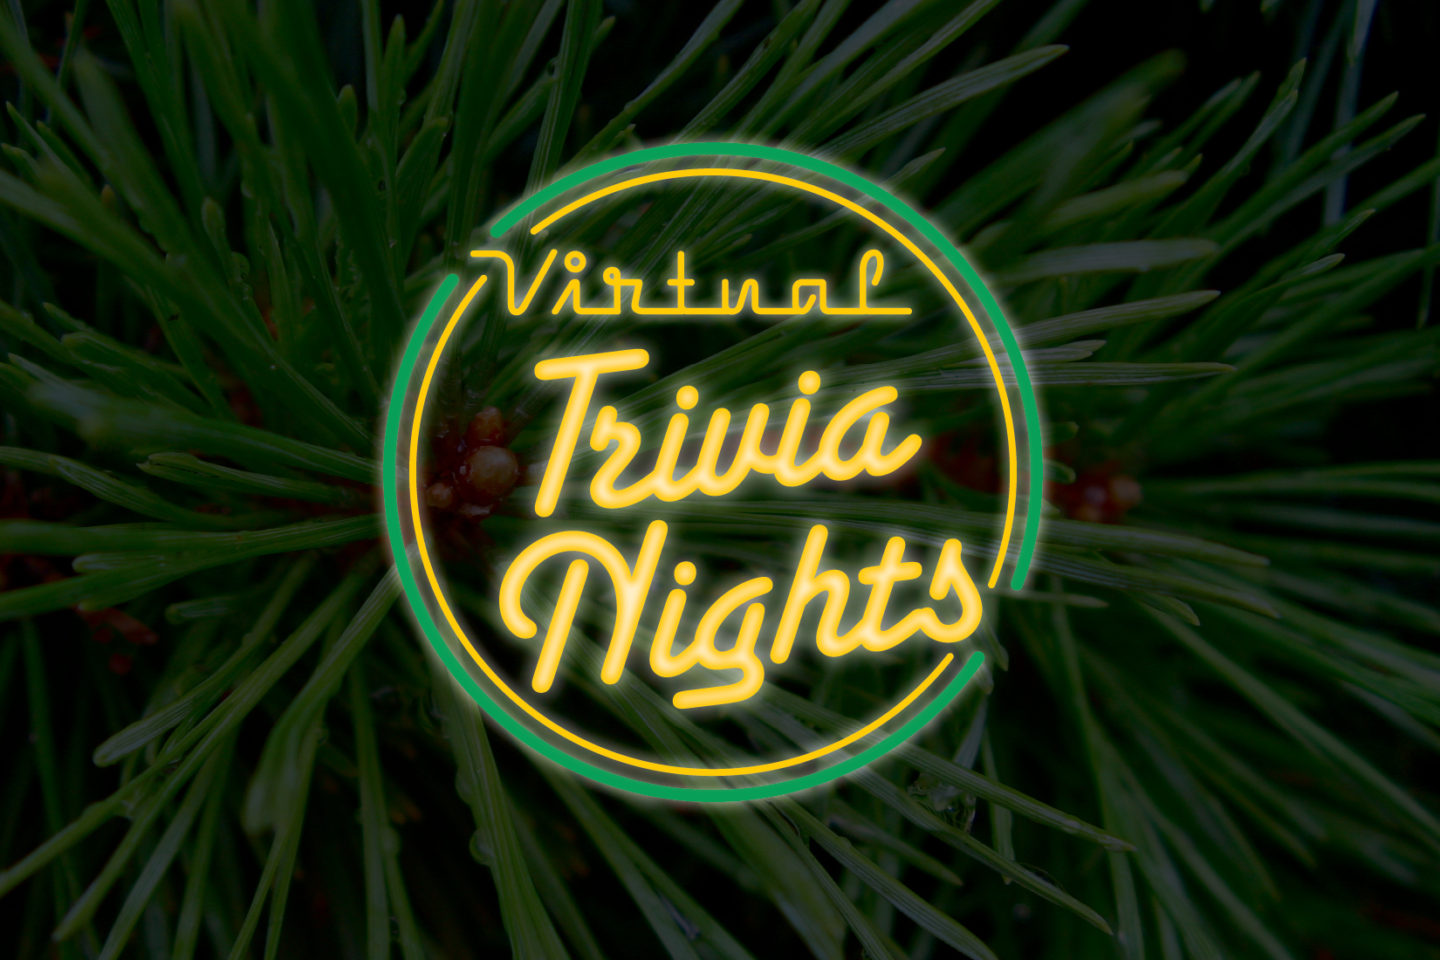 Virtual Trivia Nights